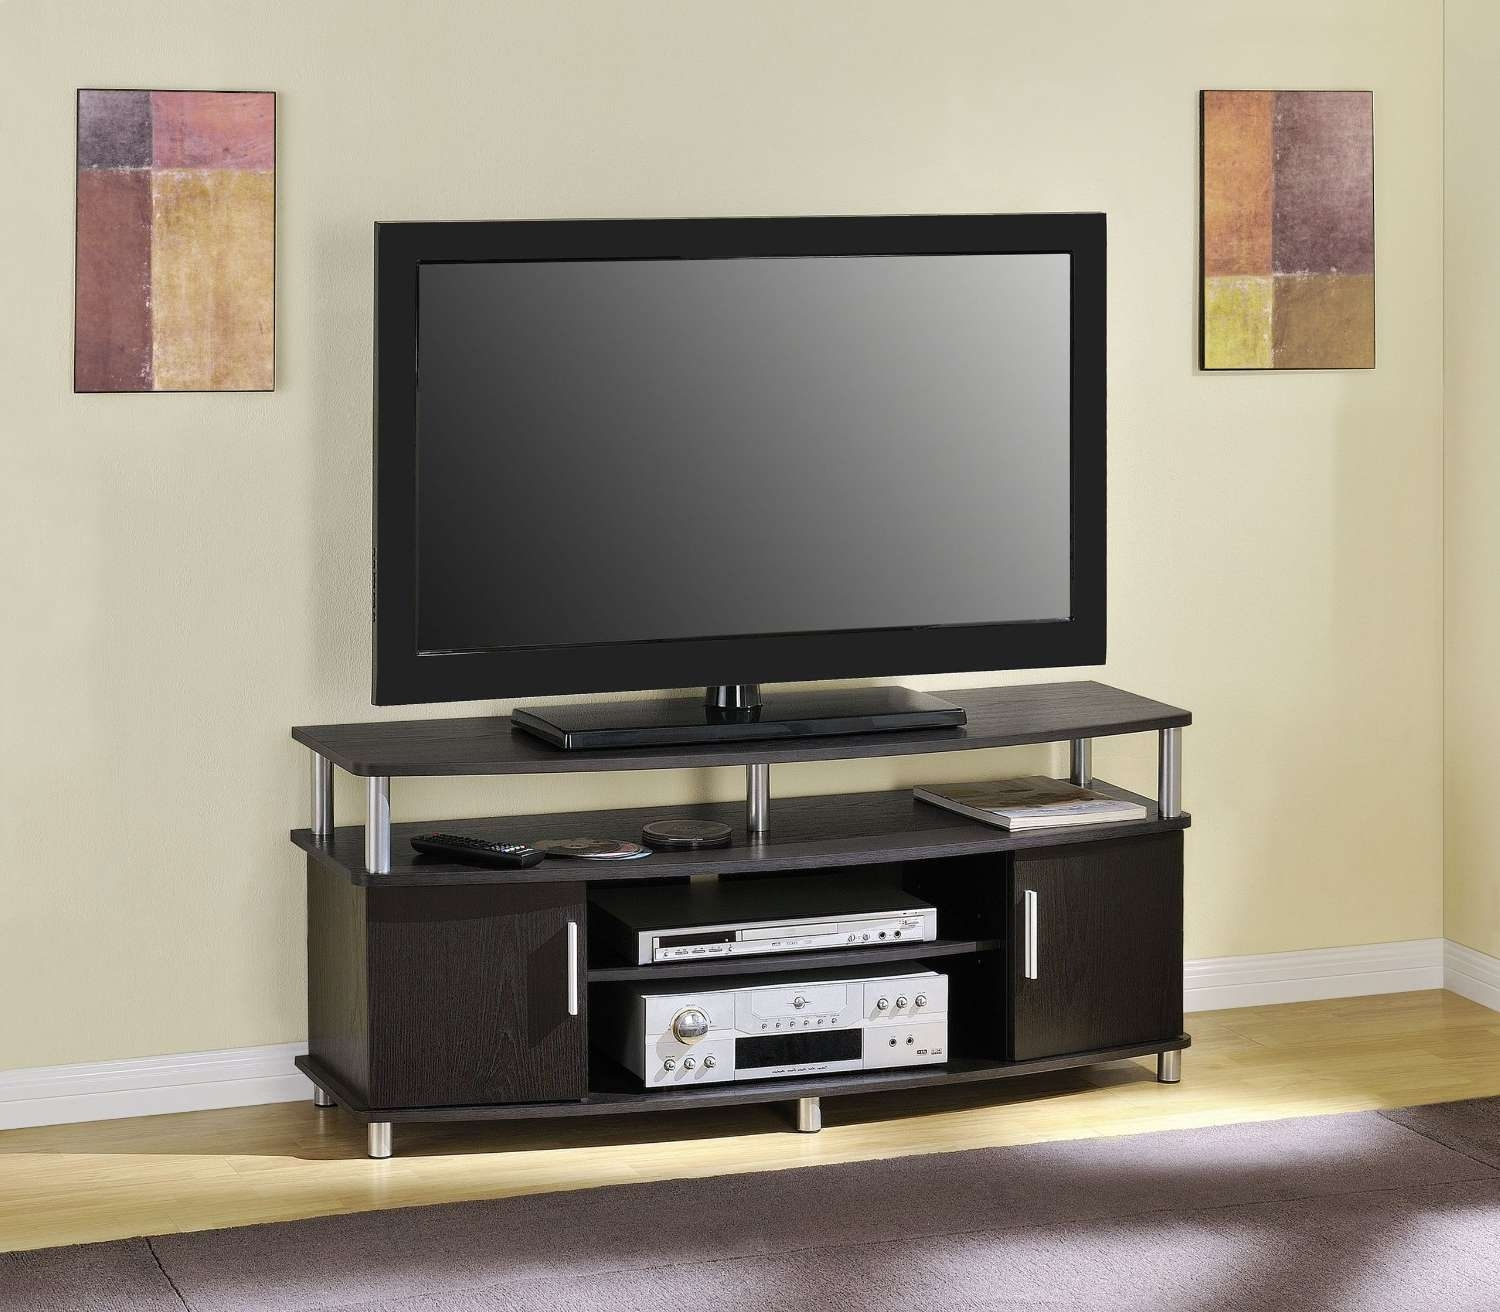 Tv Stands: 7 Best Selling Flat Screen Tv Stands 2017 In Wide Screen Tv Stands (View 2 of 15)